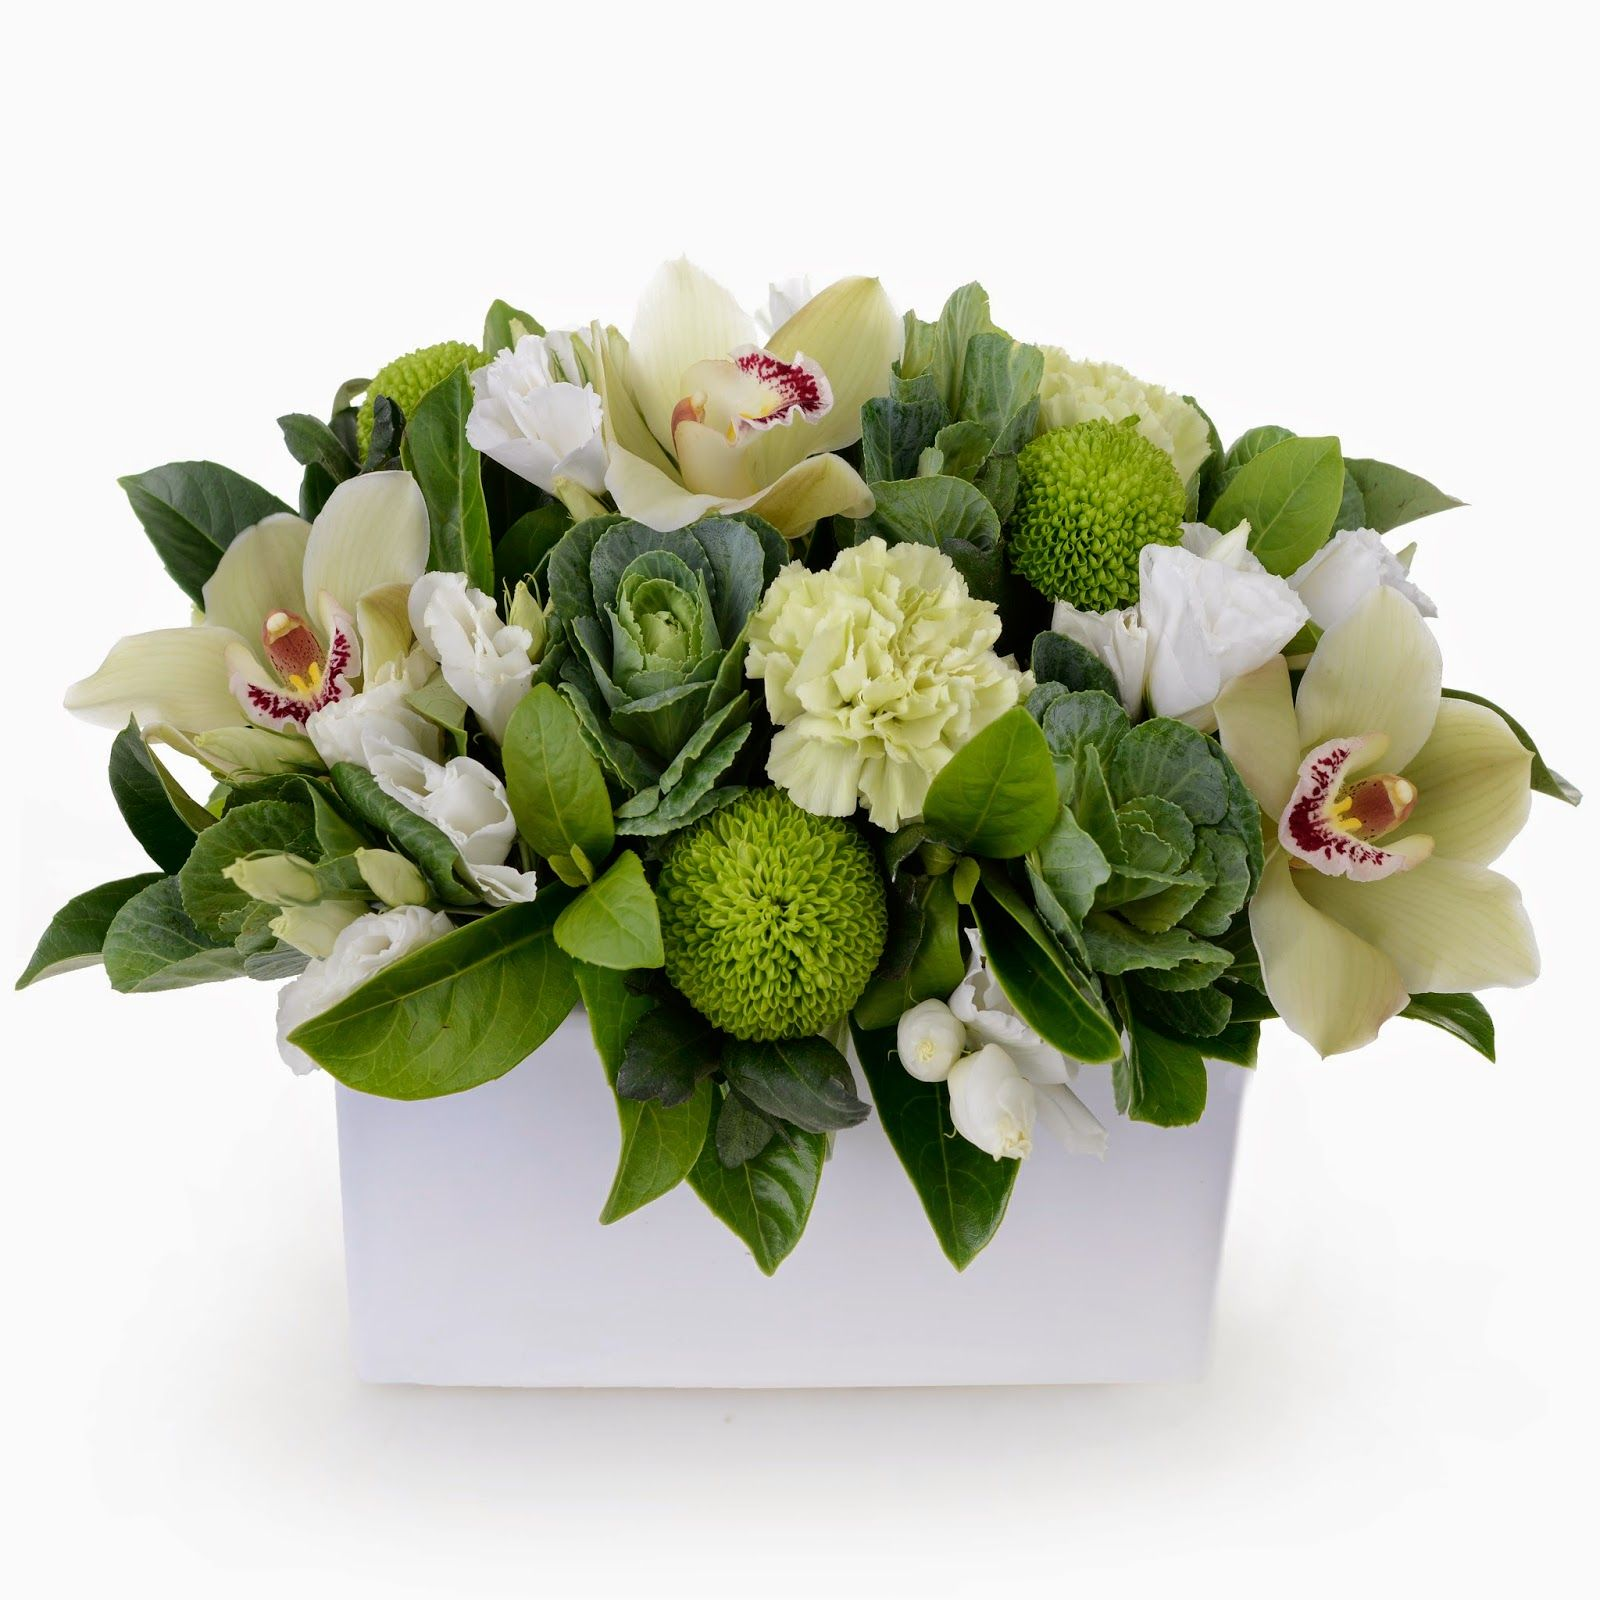 5 elegant choices for easter flowers 2017 weddings pinterest urban flower blog sydneys freshest flowers weddings events order by 2pm for delivery today open monday to saturday 7am 11pm 02 9745 1668 izmirmasajfo